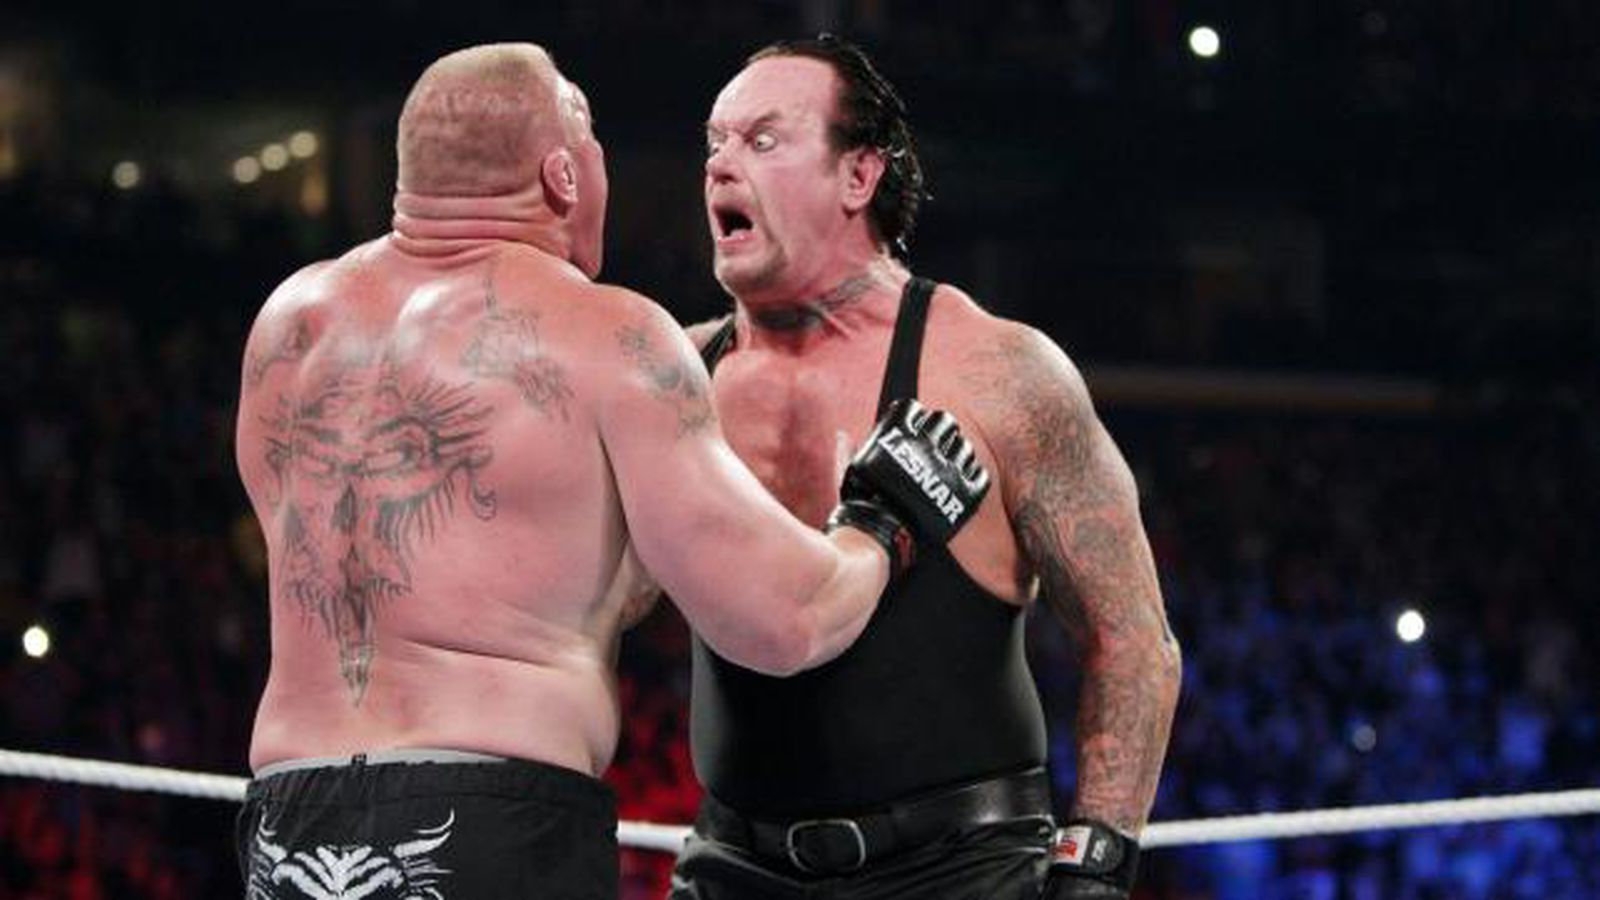 WWE Battleground 2015 results, recap, reactions: The thing that should ...